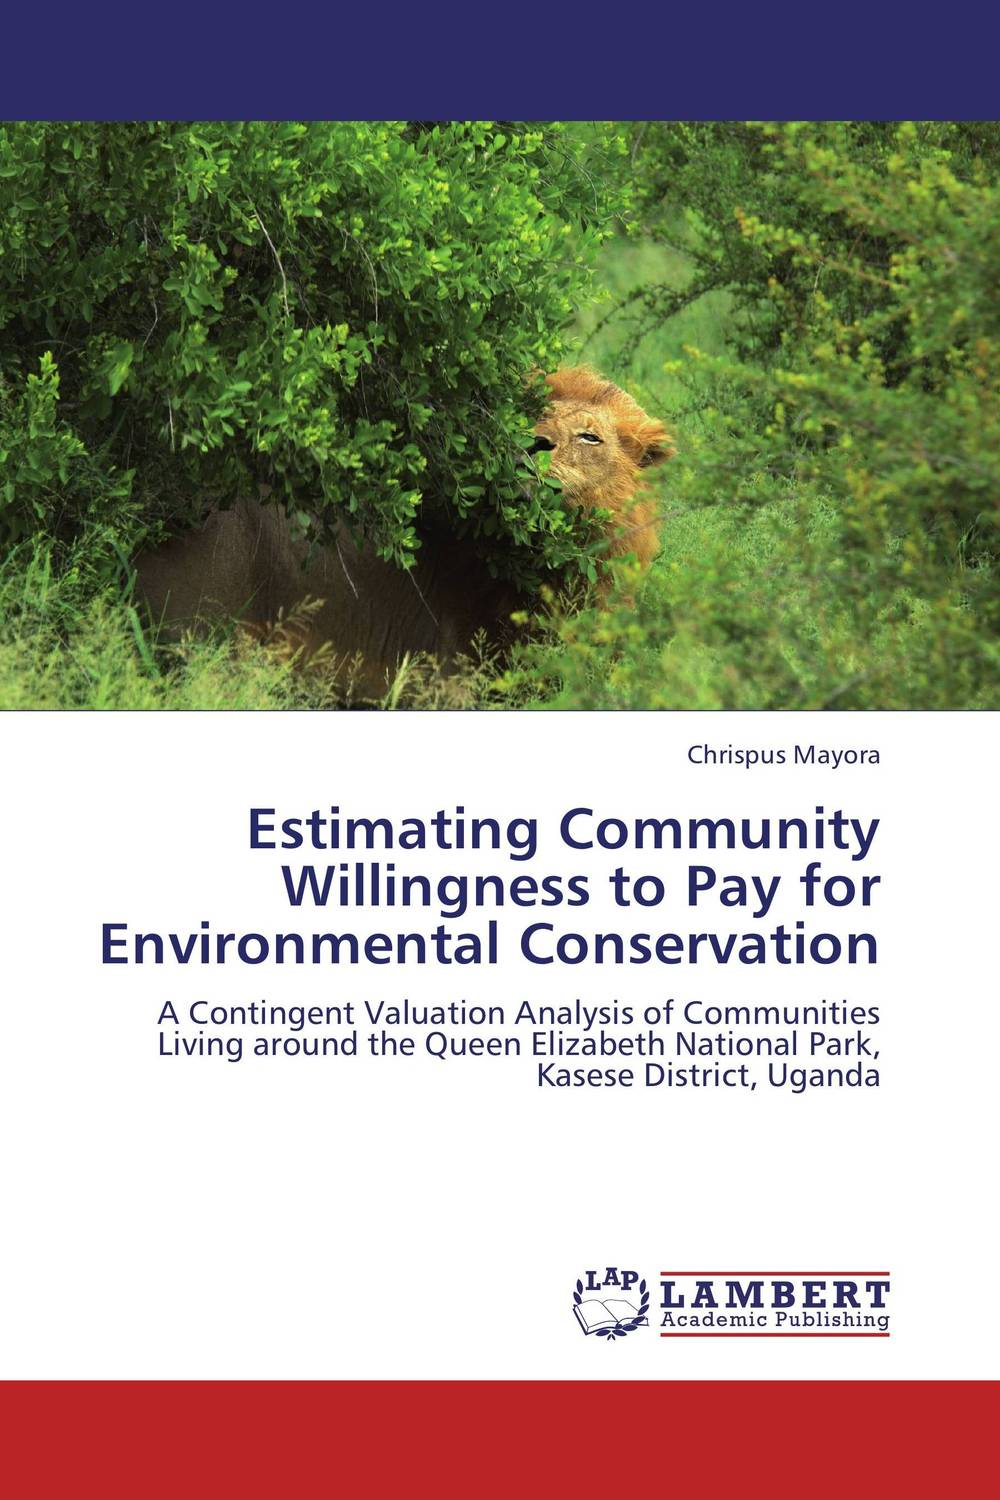 Estimating Community Willingness to Pay for Environmental Conservation ali issa estimating the demand for money in libya an application of the lagrange multiplier structural break unit root test and the ardl cointegration approach